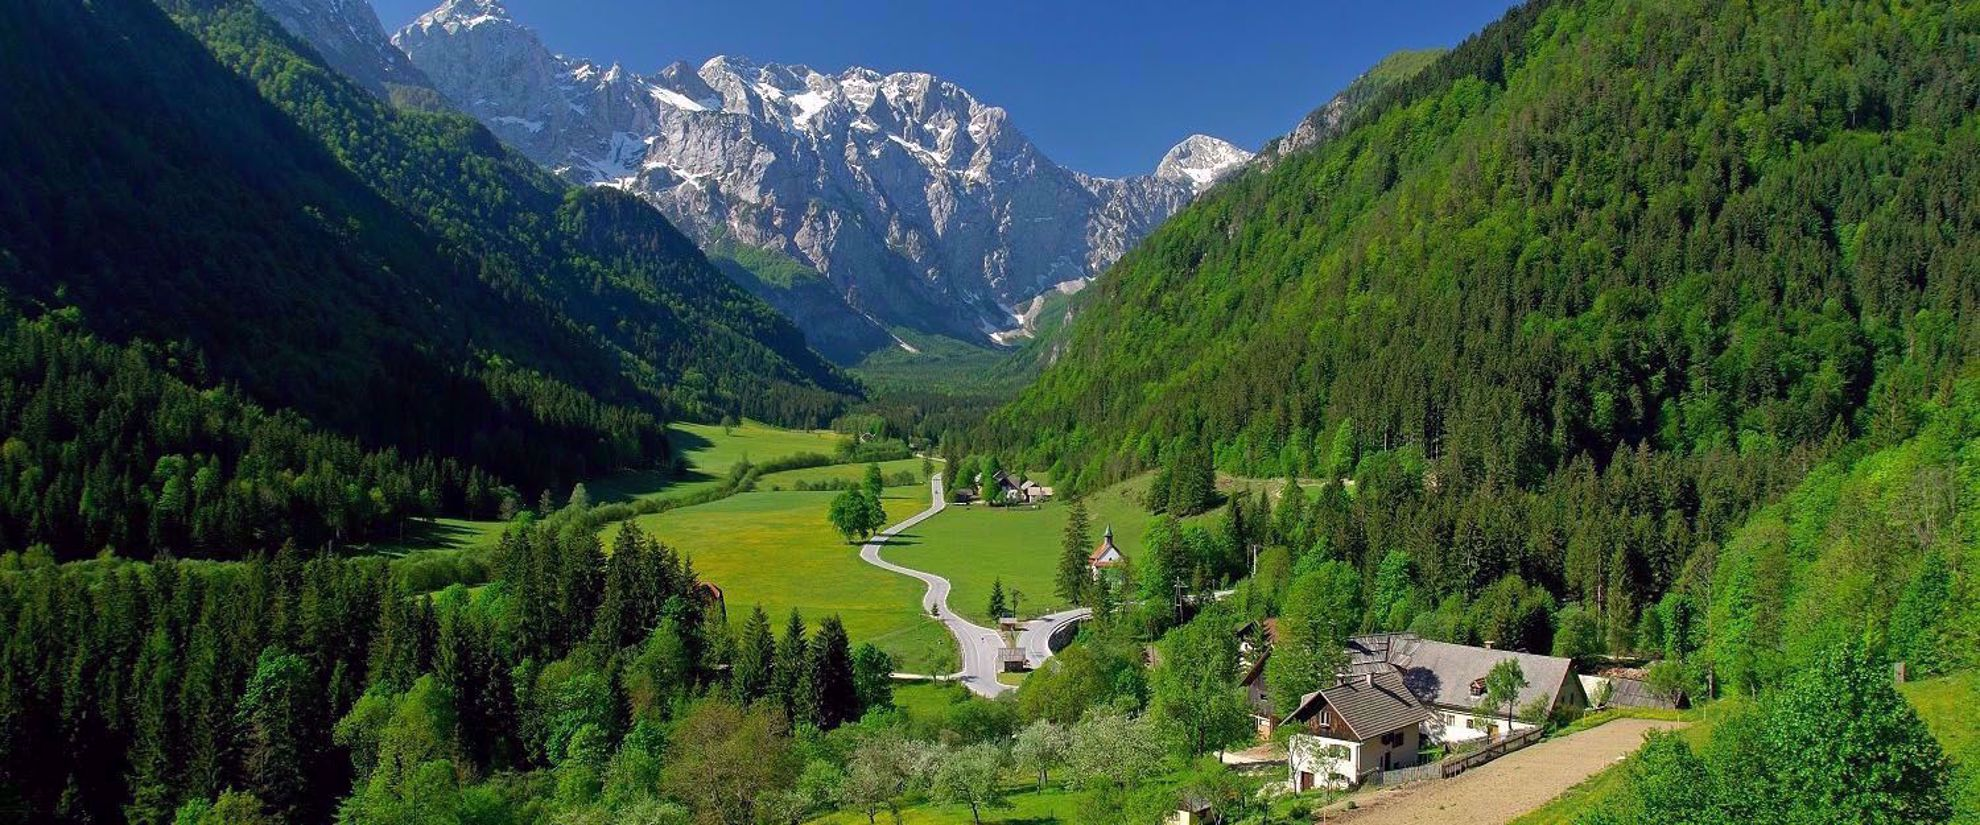 Picture of Hiking Slovenia and the Julian Alps